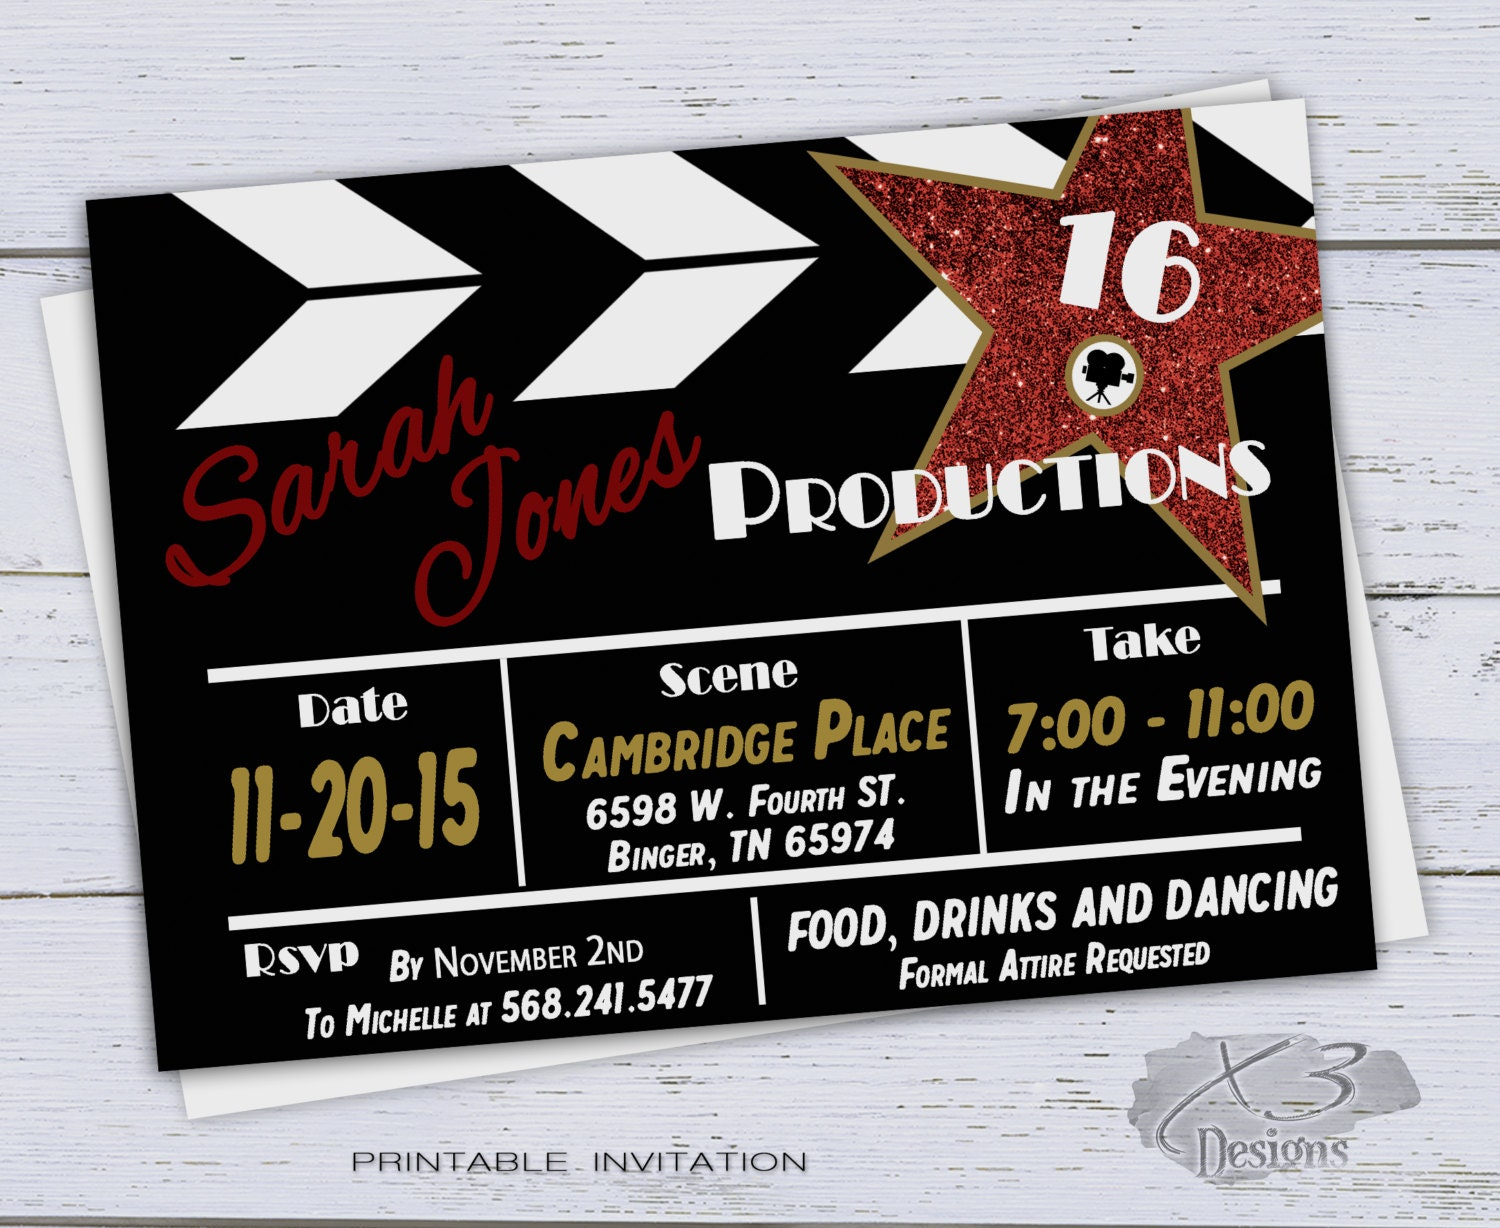 Hollywood Star Invitations with perfect invitations sample